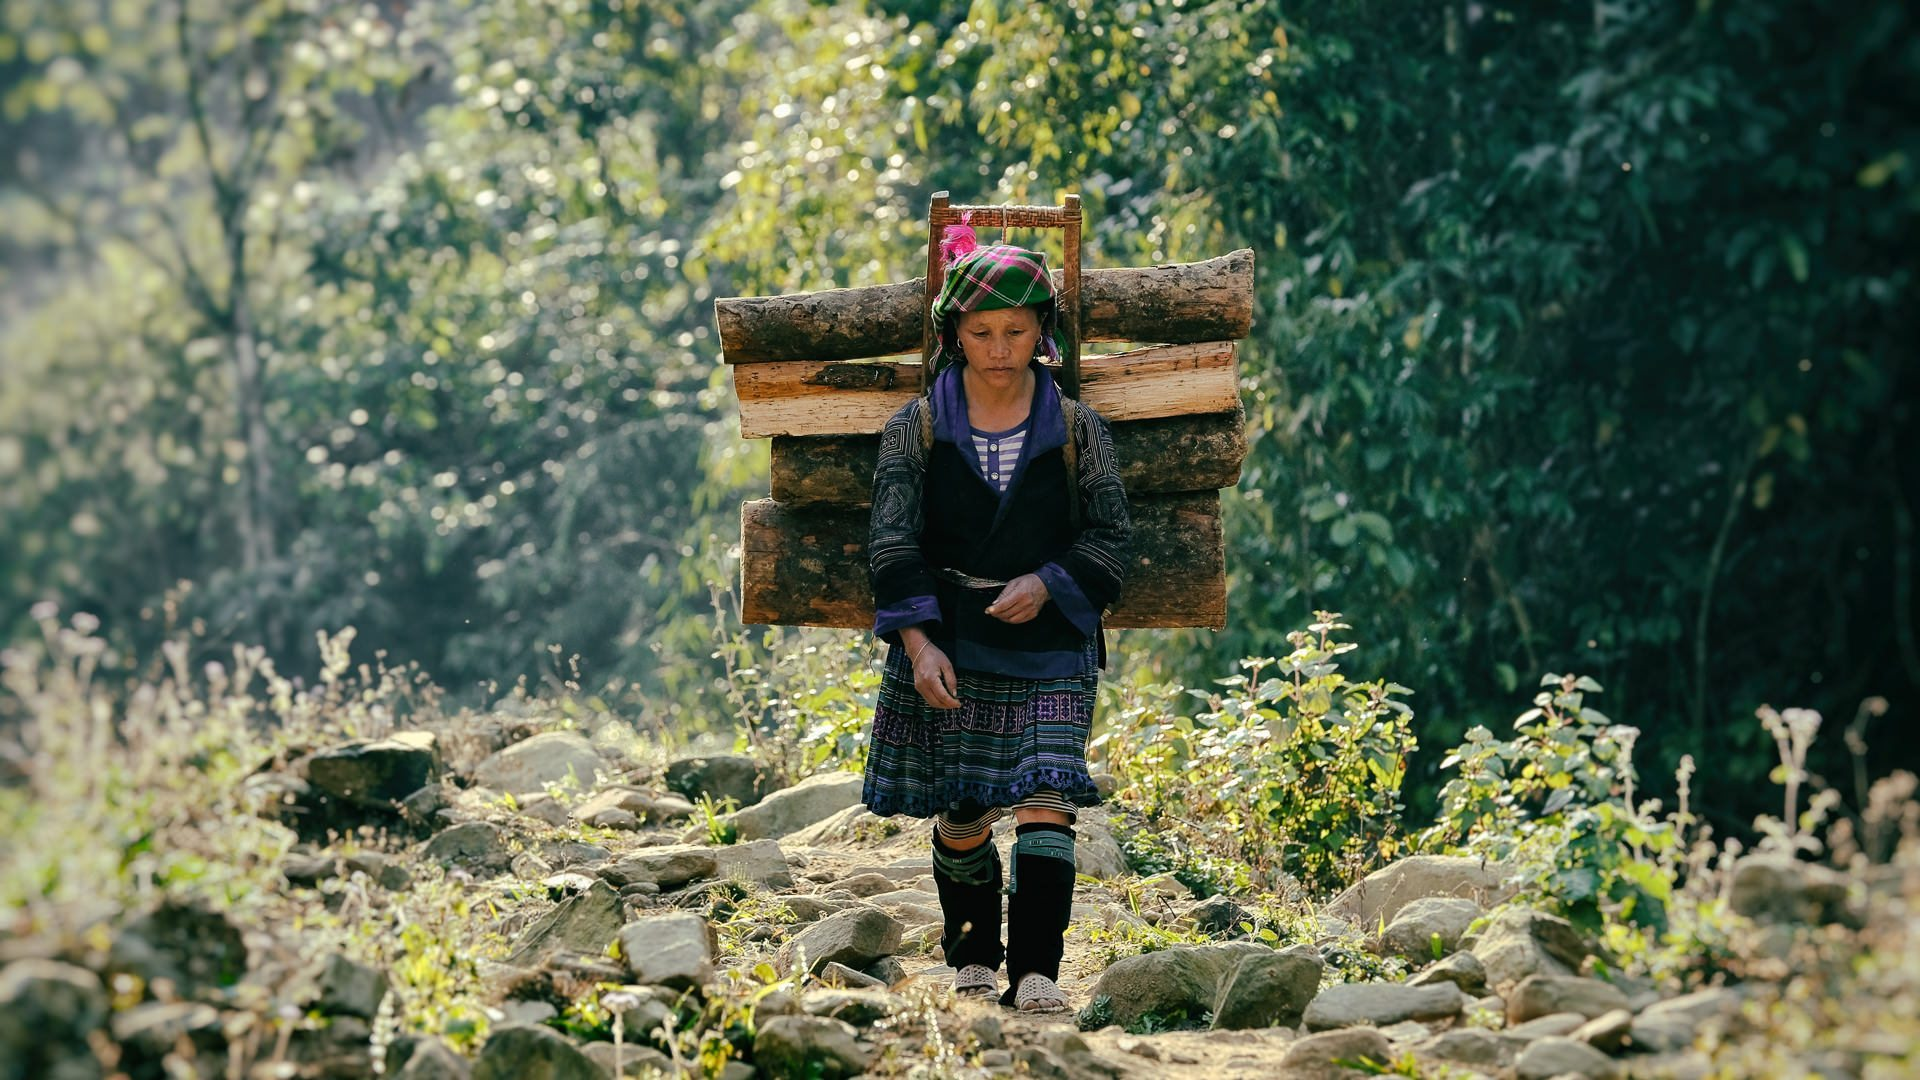 a young hmong girl returns in dawn light form the forests collecting wood © Hamish Scott-Brown